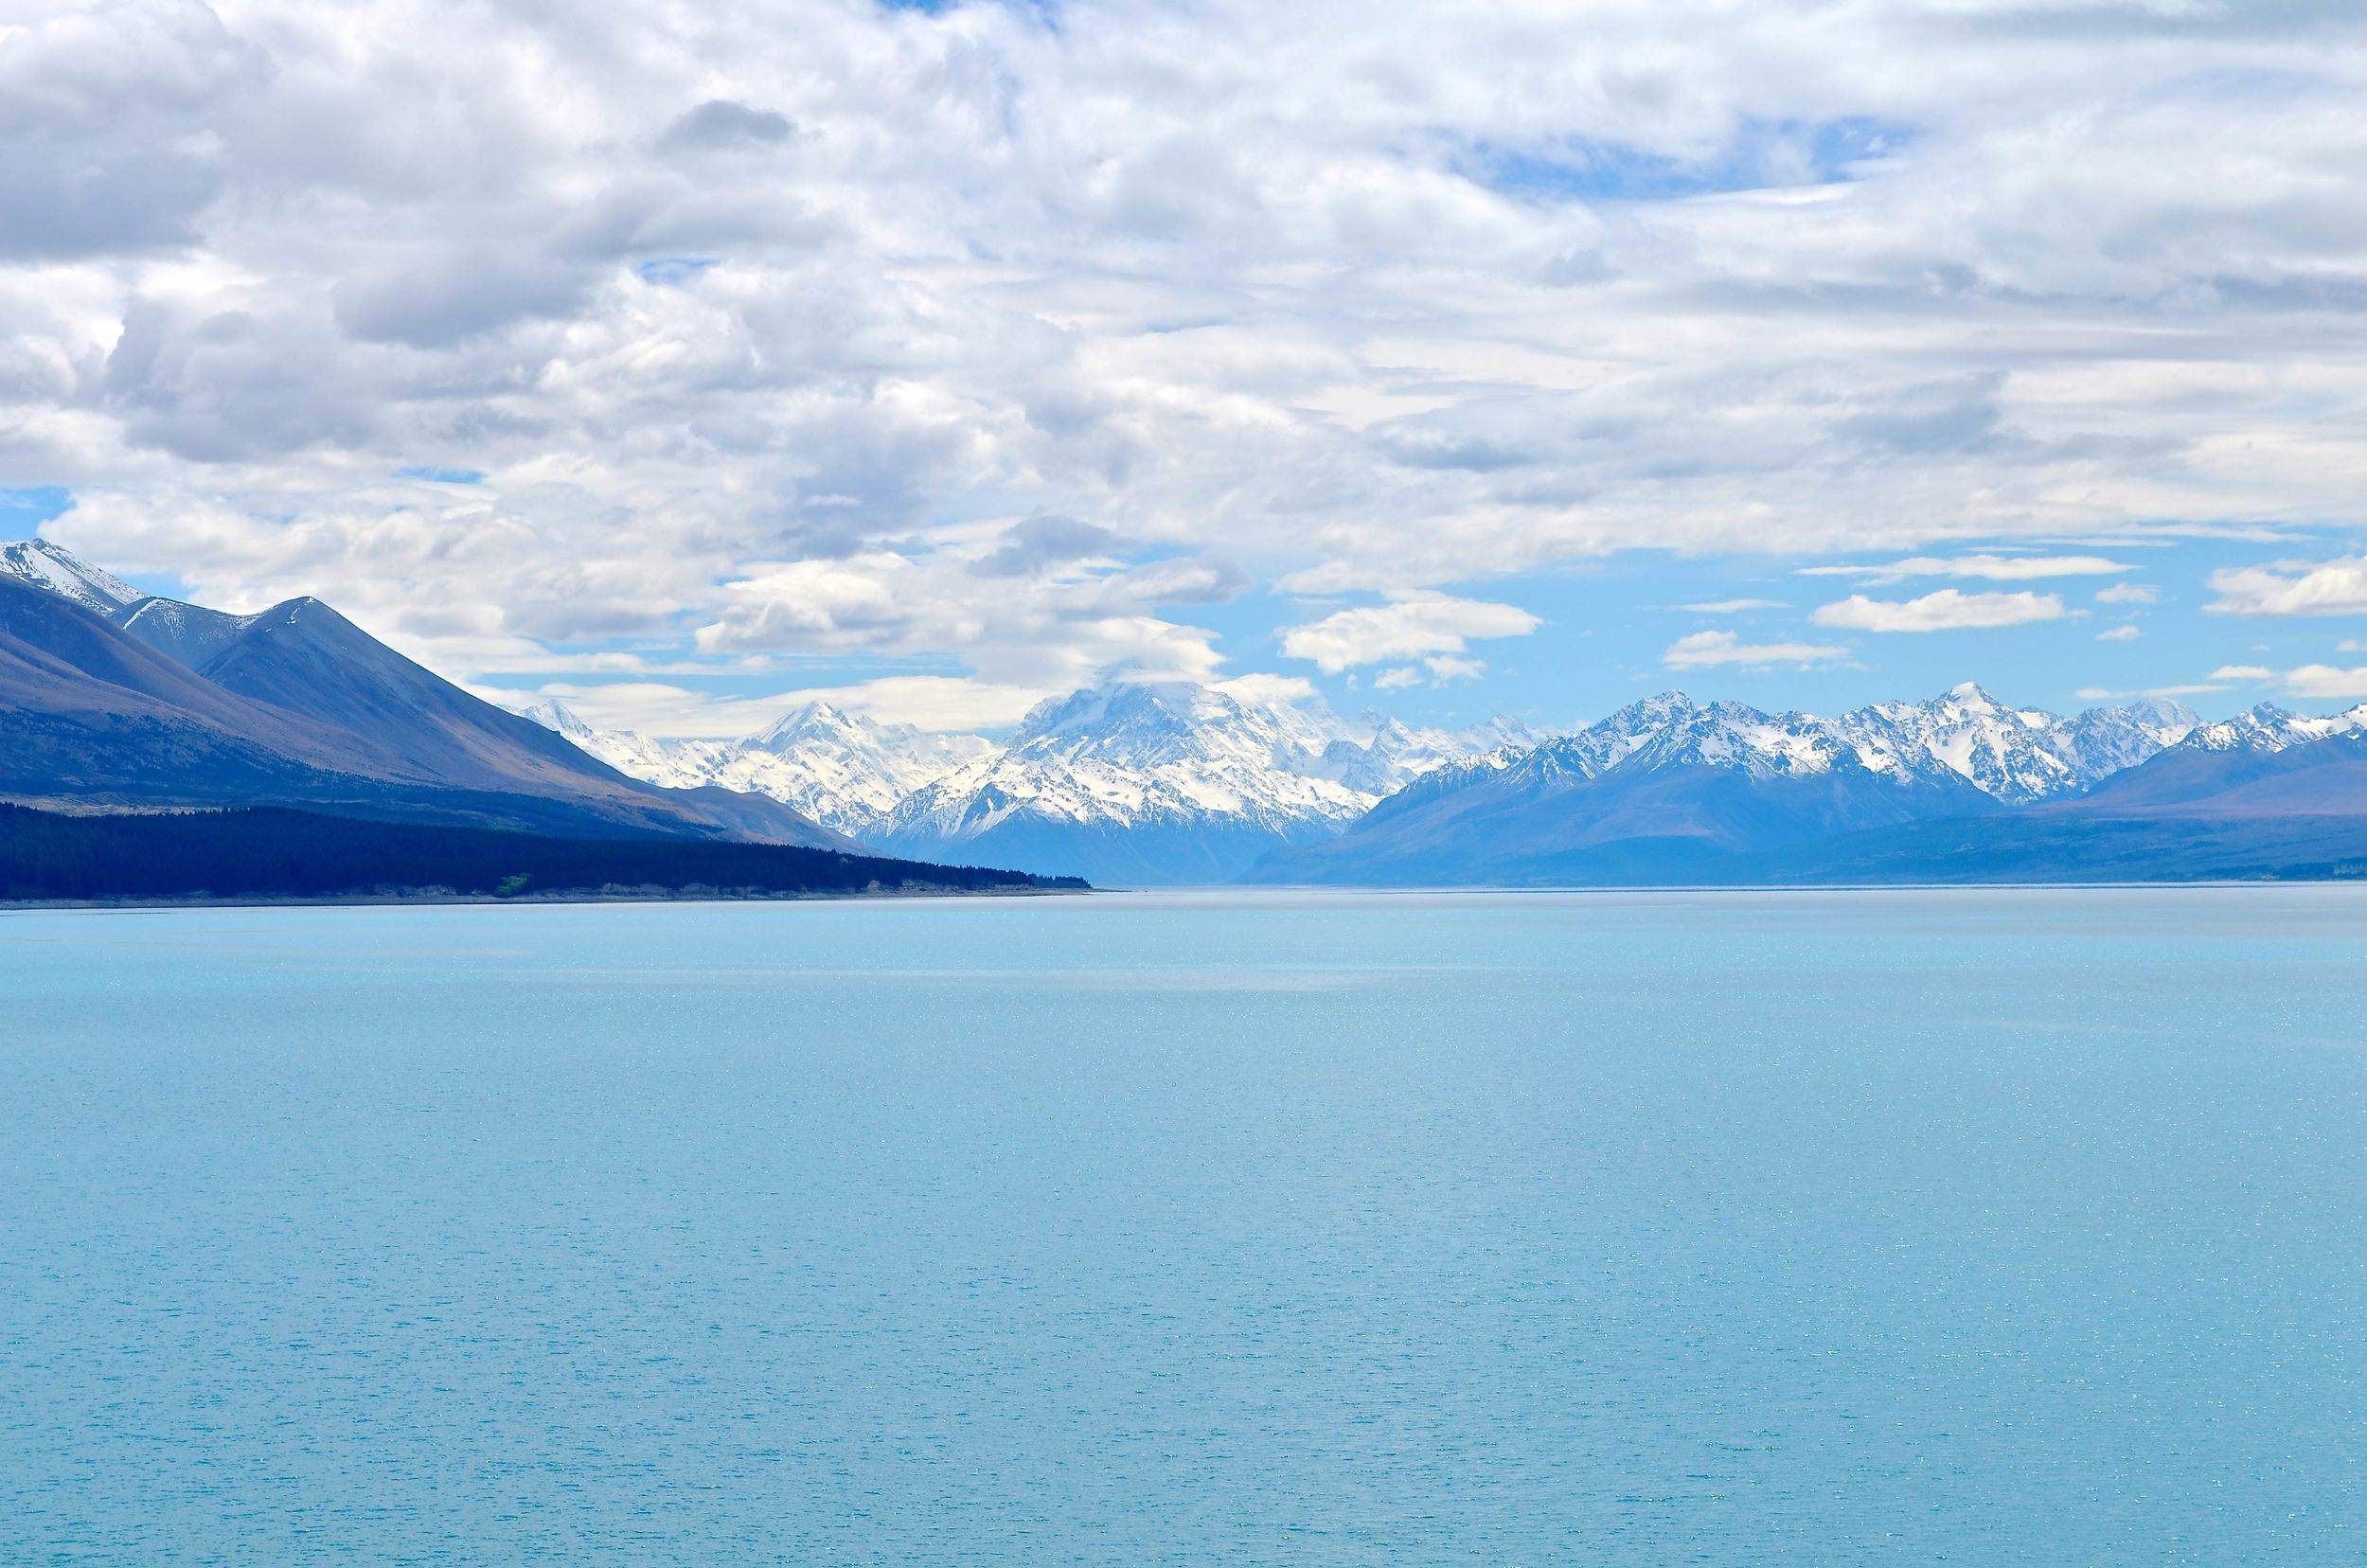 Lake Pukaki with Mount Cook in the background.